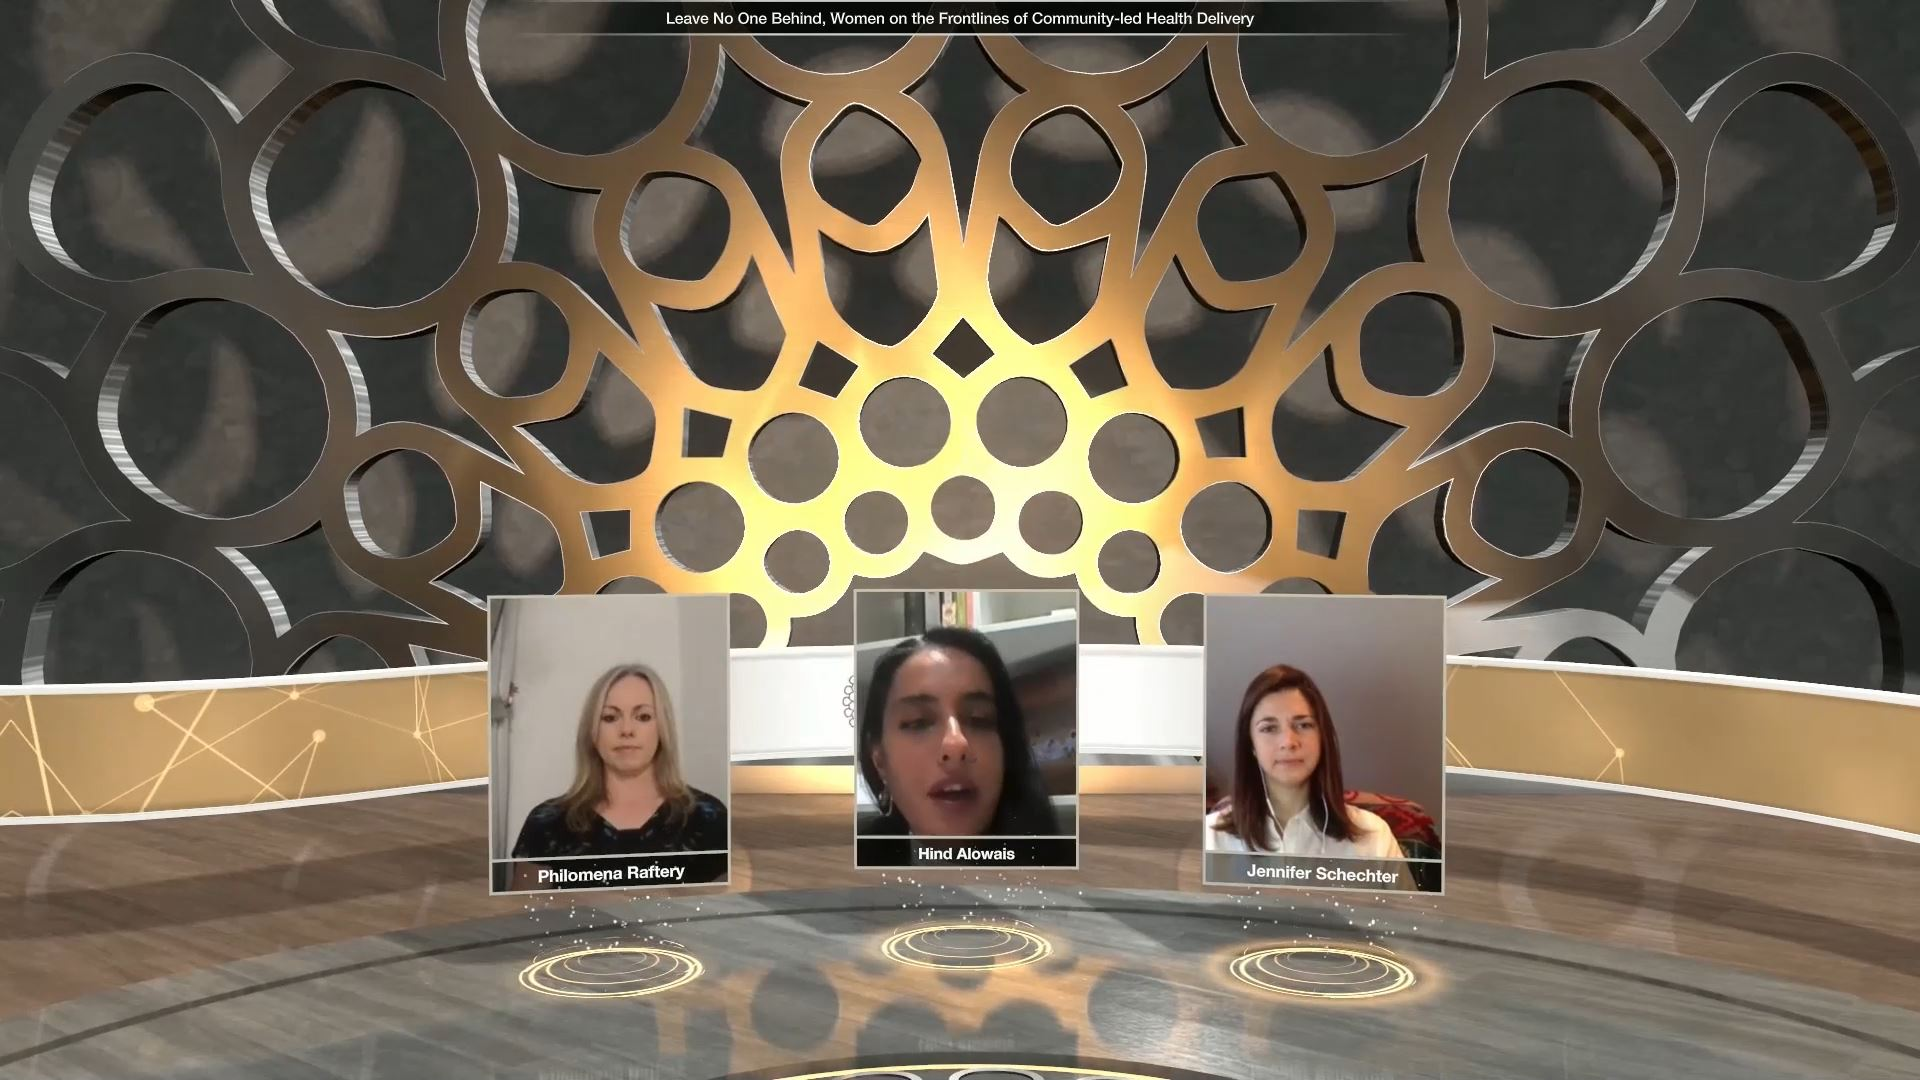 expo 2020 health and wellness week virtual event panel discussion